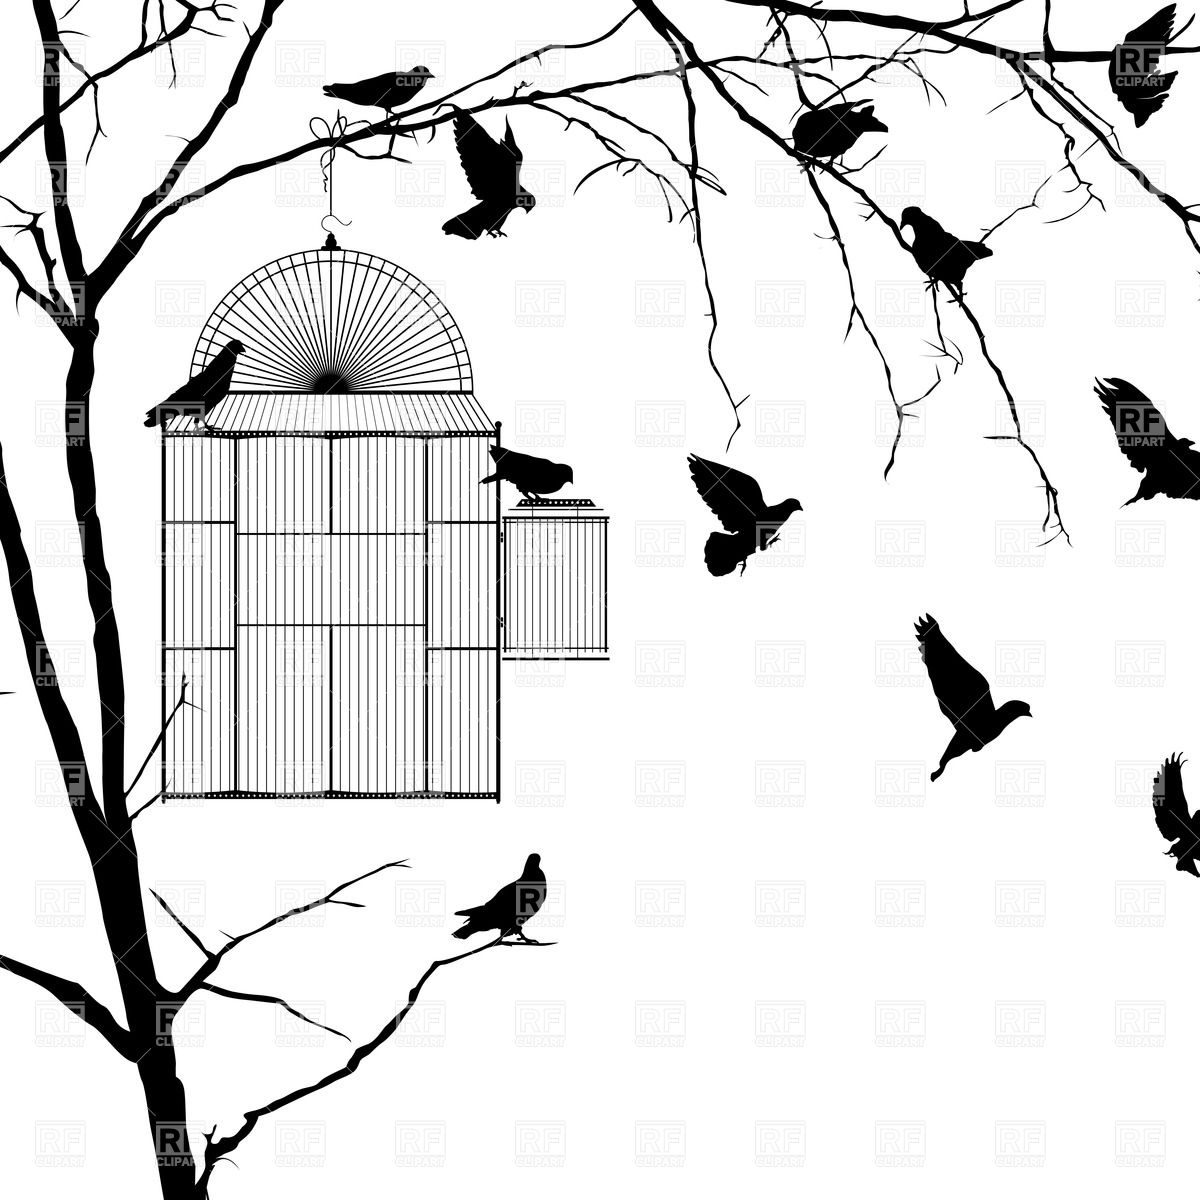 1200x1200 Birdcage And Silhouettes Of Birds Royalty Free Vector Clip Art